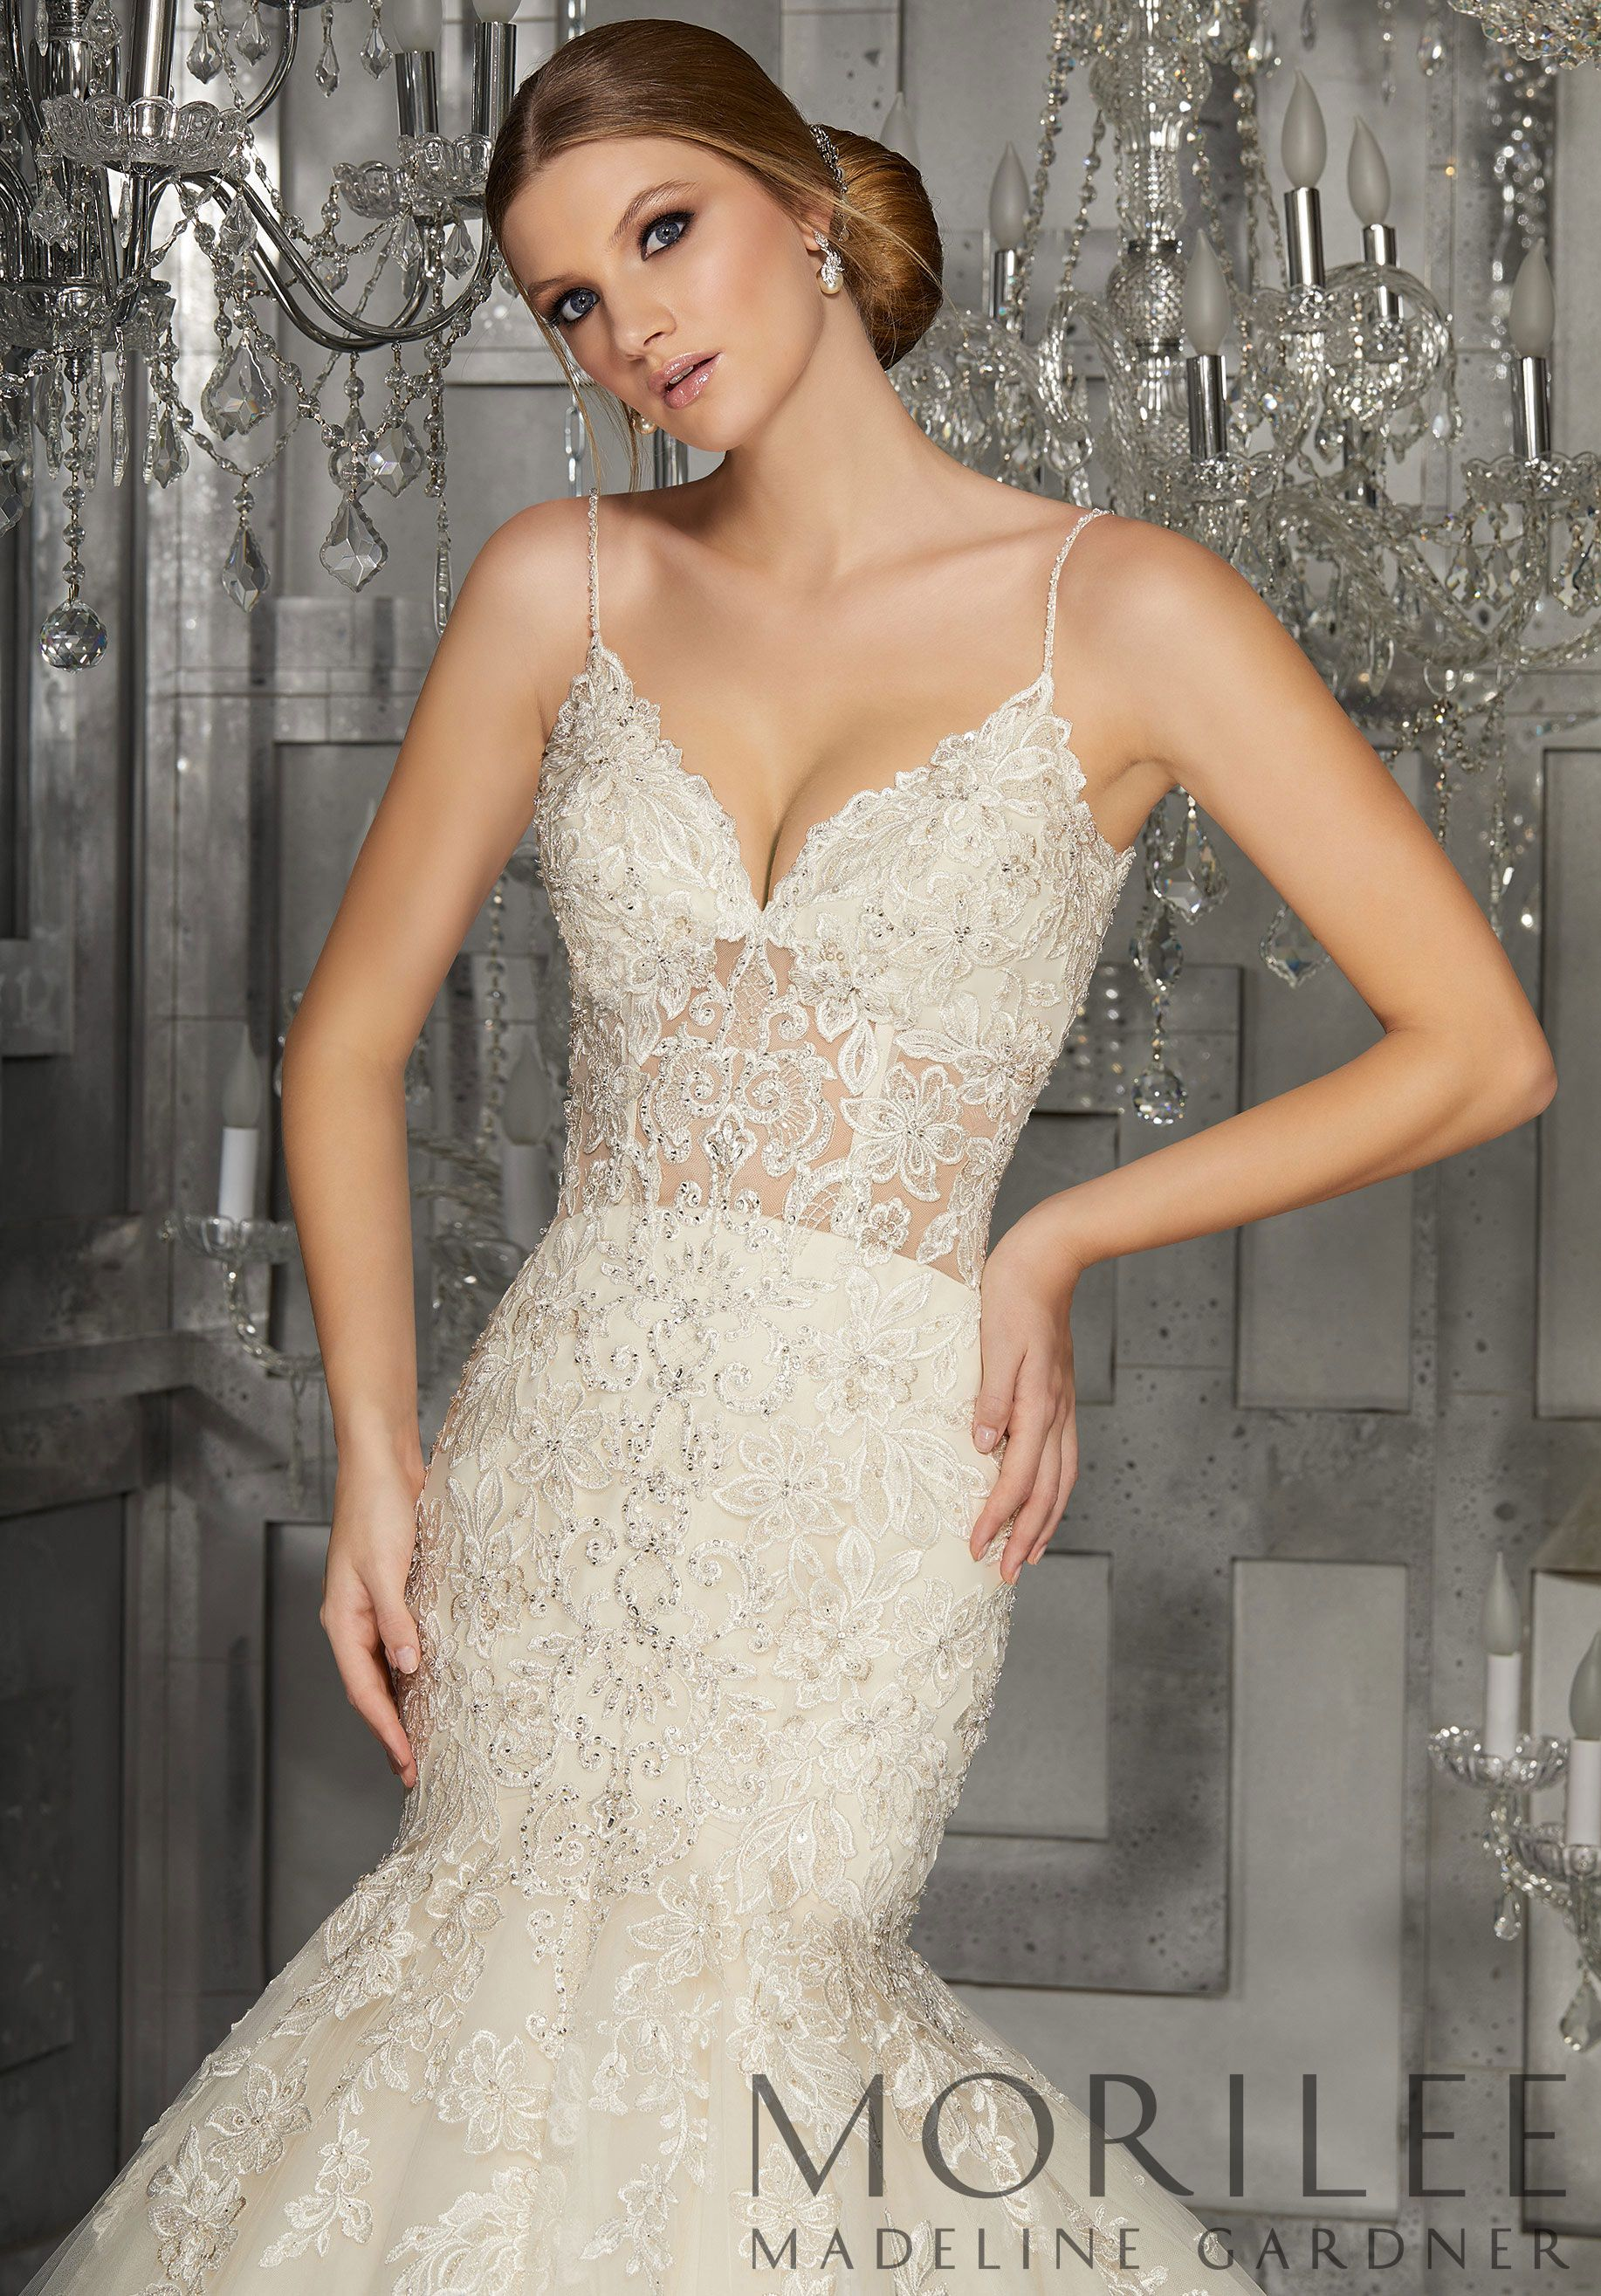 Mori lee madeline gardner wedding dress  Morilee  Madeline Gardner Mihaiia Wedding Dress Crystal Beaded